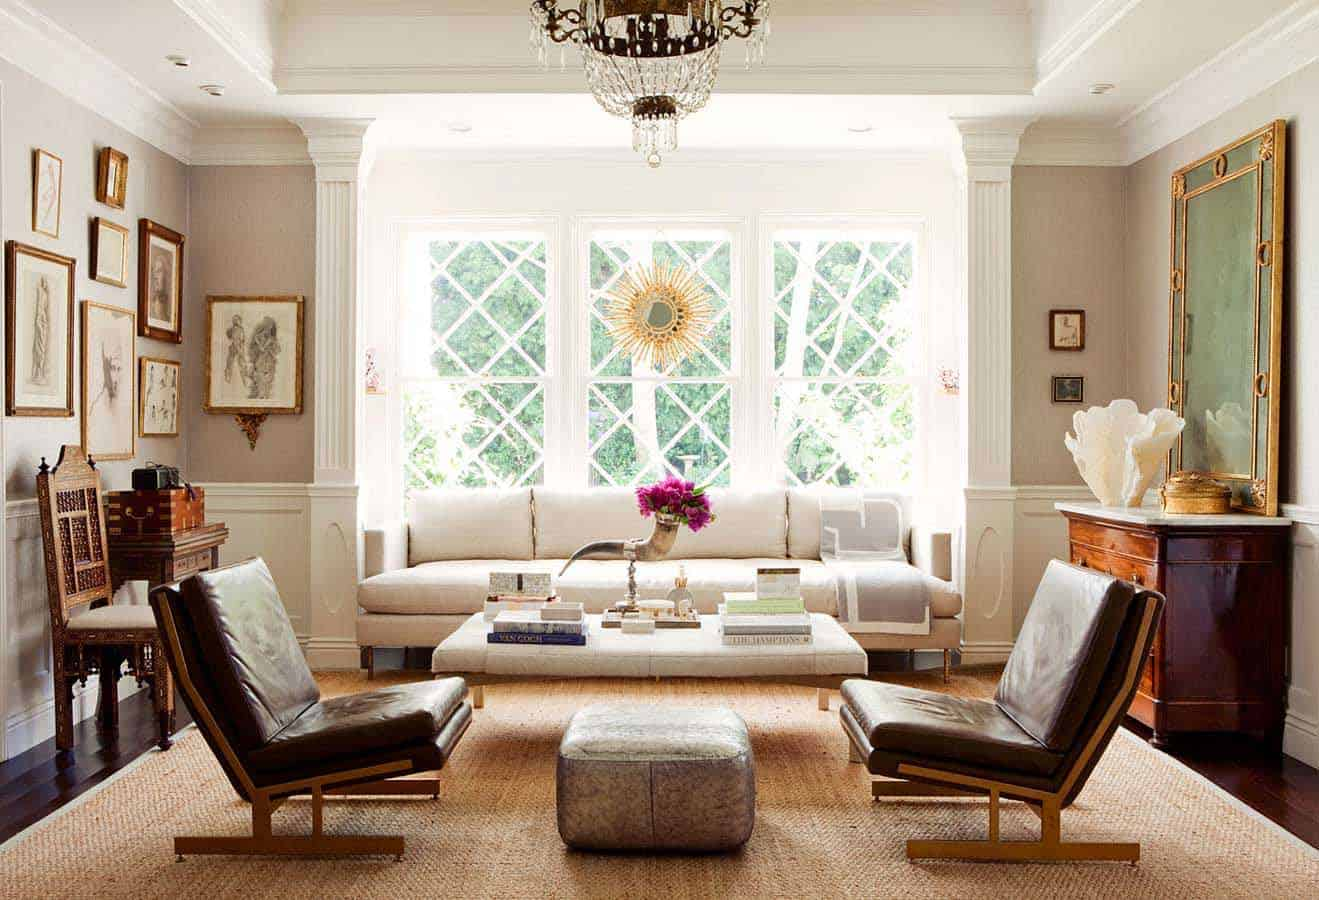 Arranging living room furniture kristina wolf design for Living room furniture arrangement